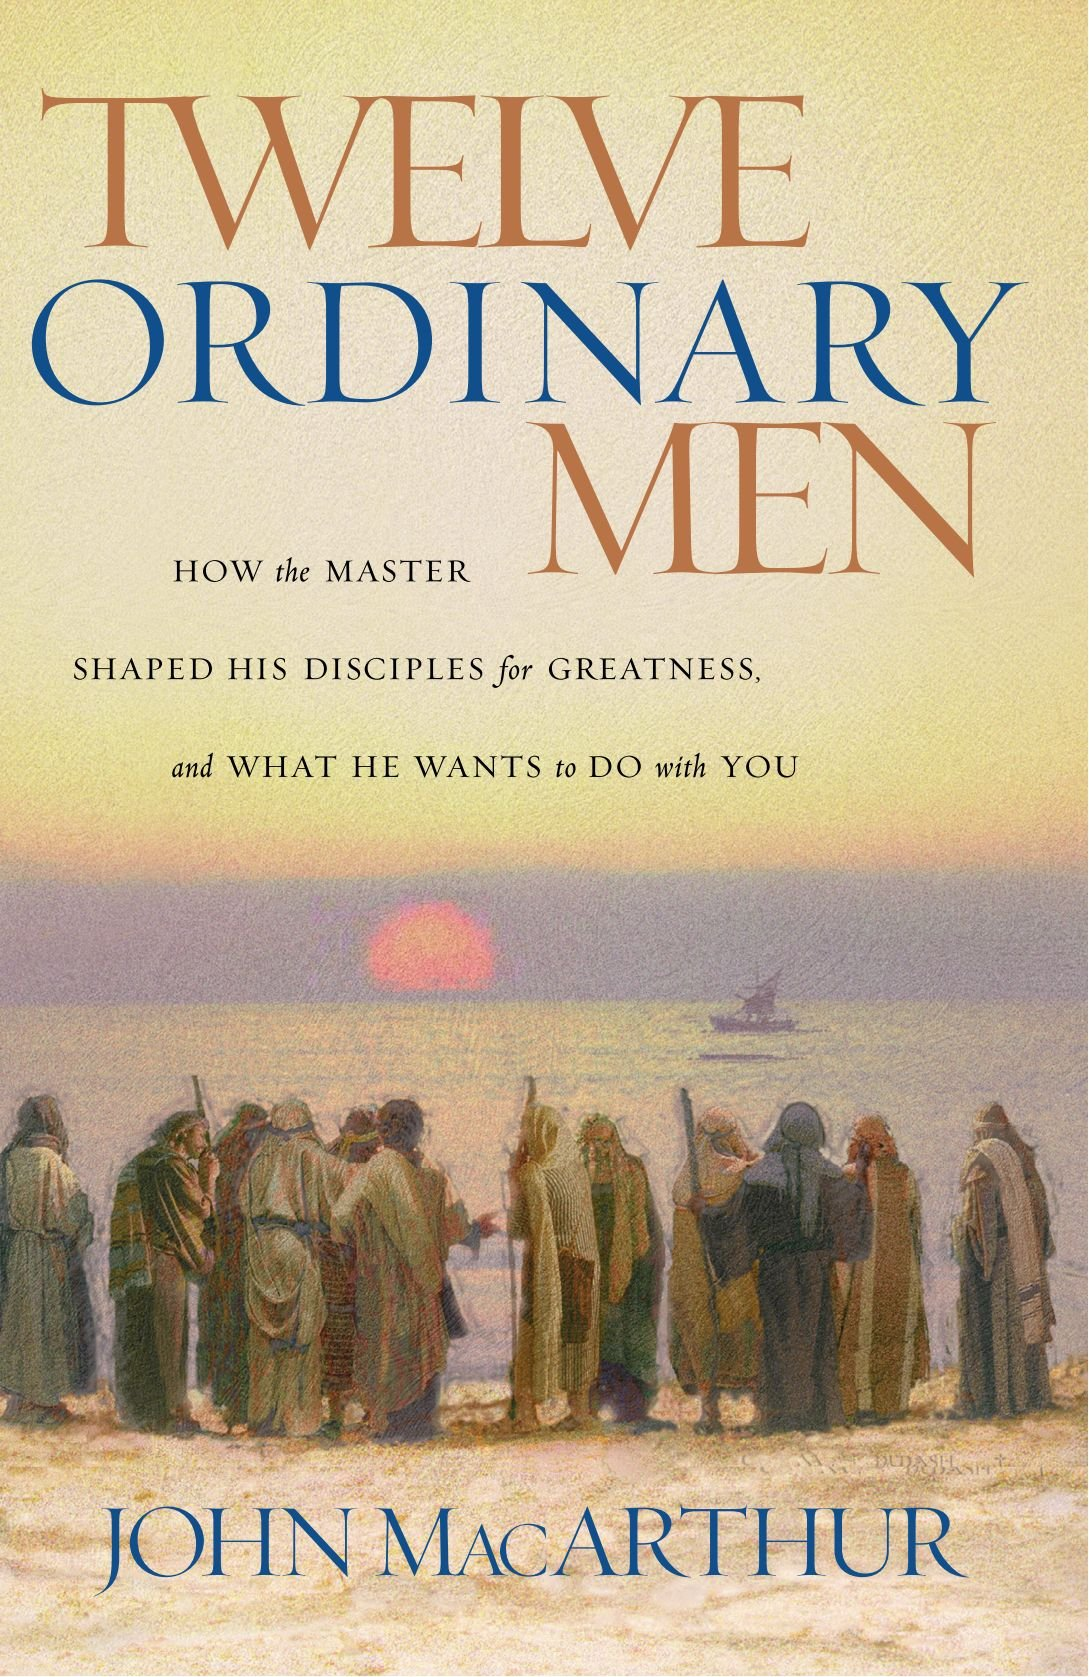 Twelve Ordinary Men: How the Master Shaped His Disciples for Greatness, and What He Wants to Do with You by HarperCollins Christian Pub.